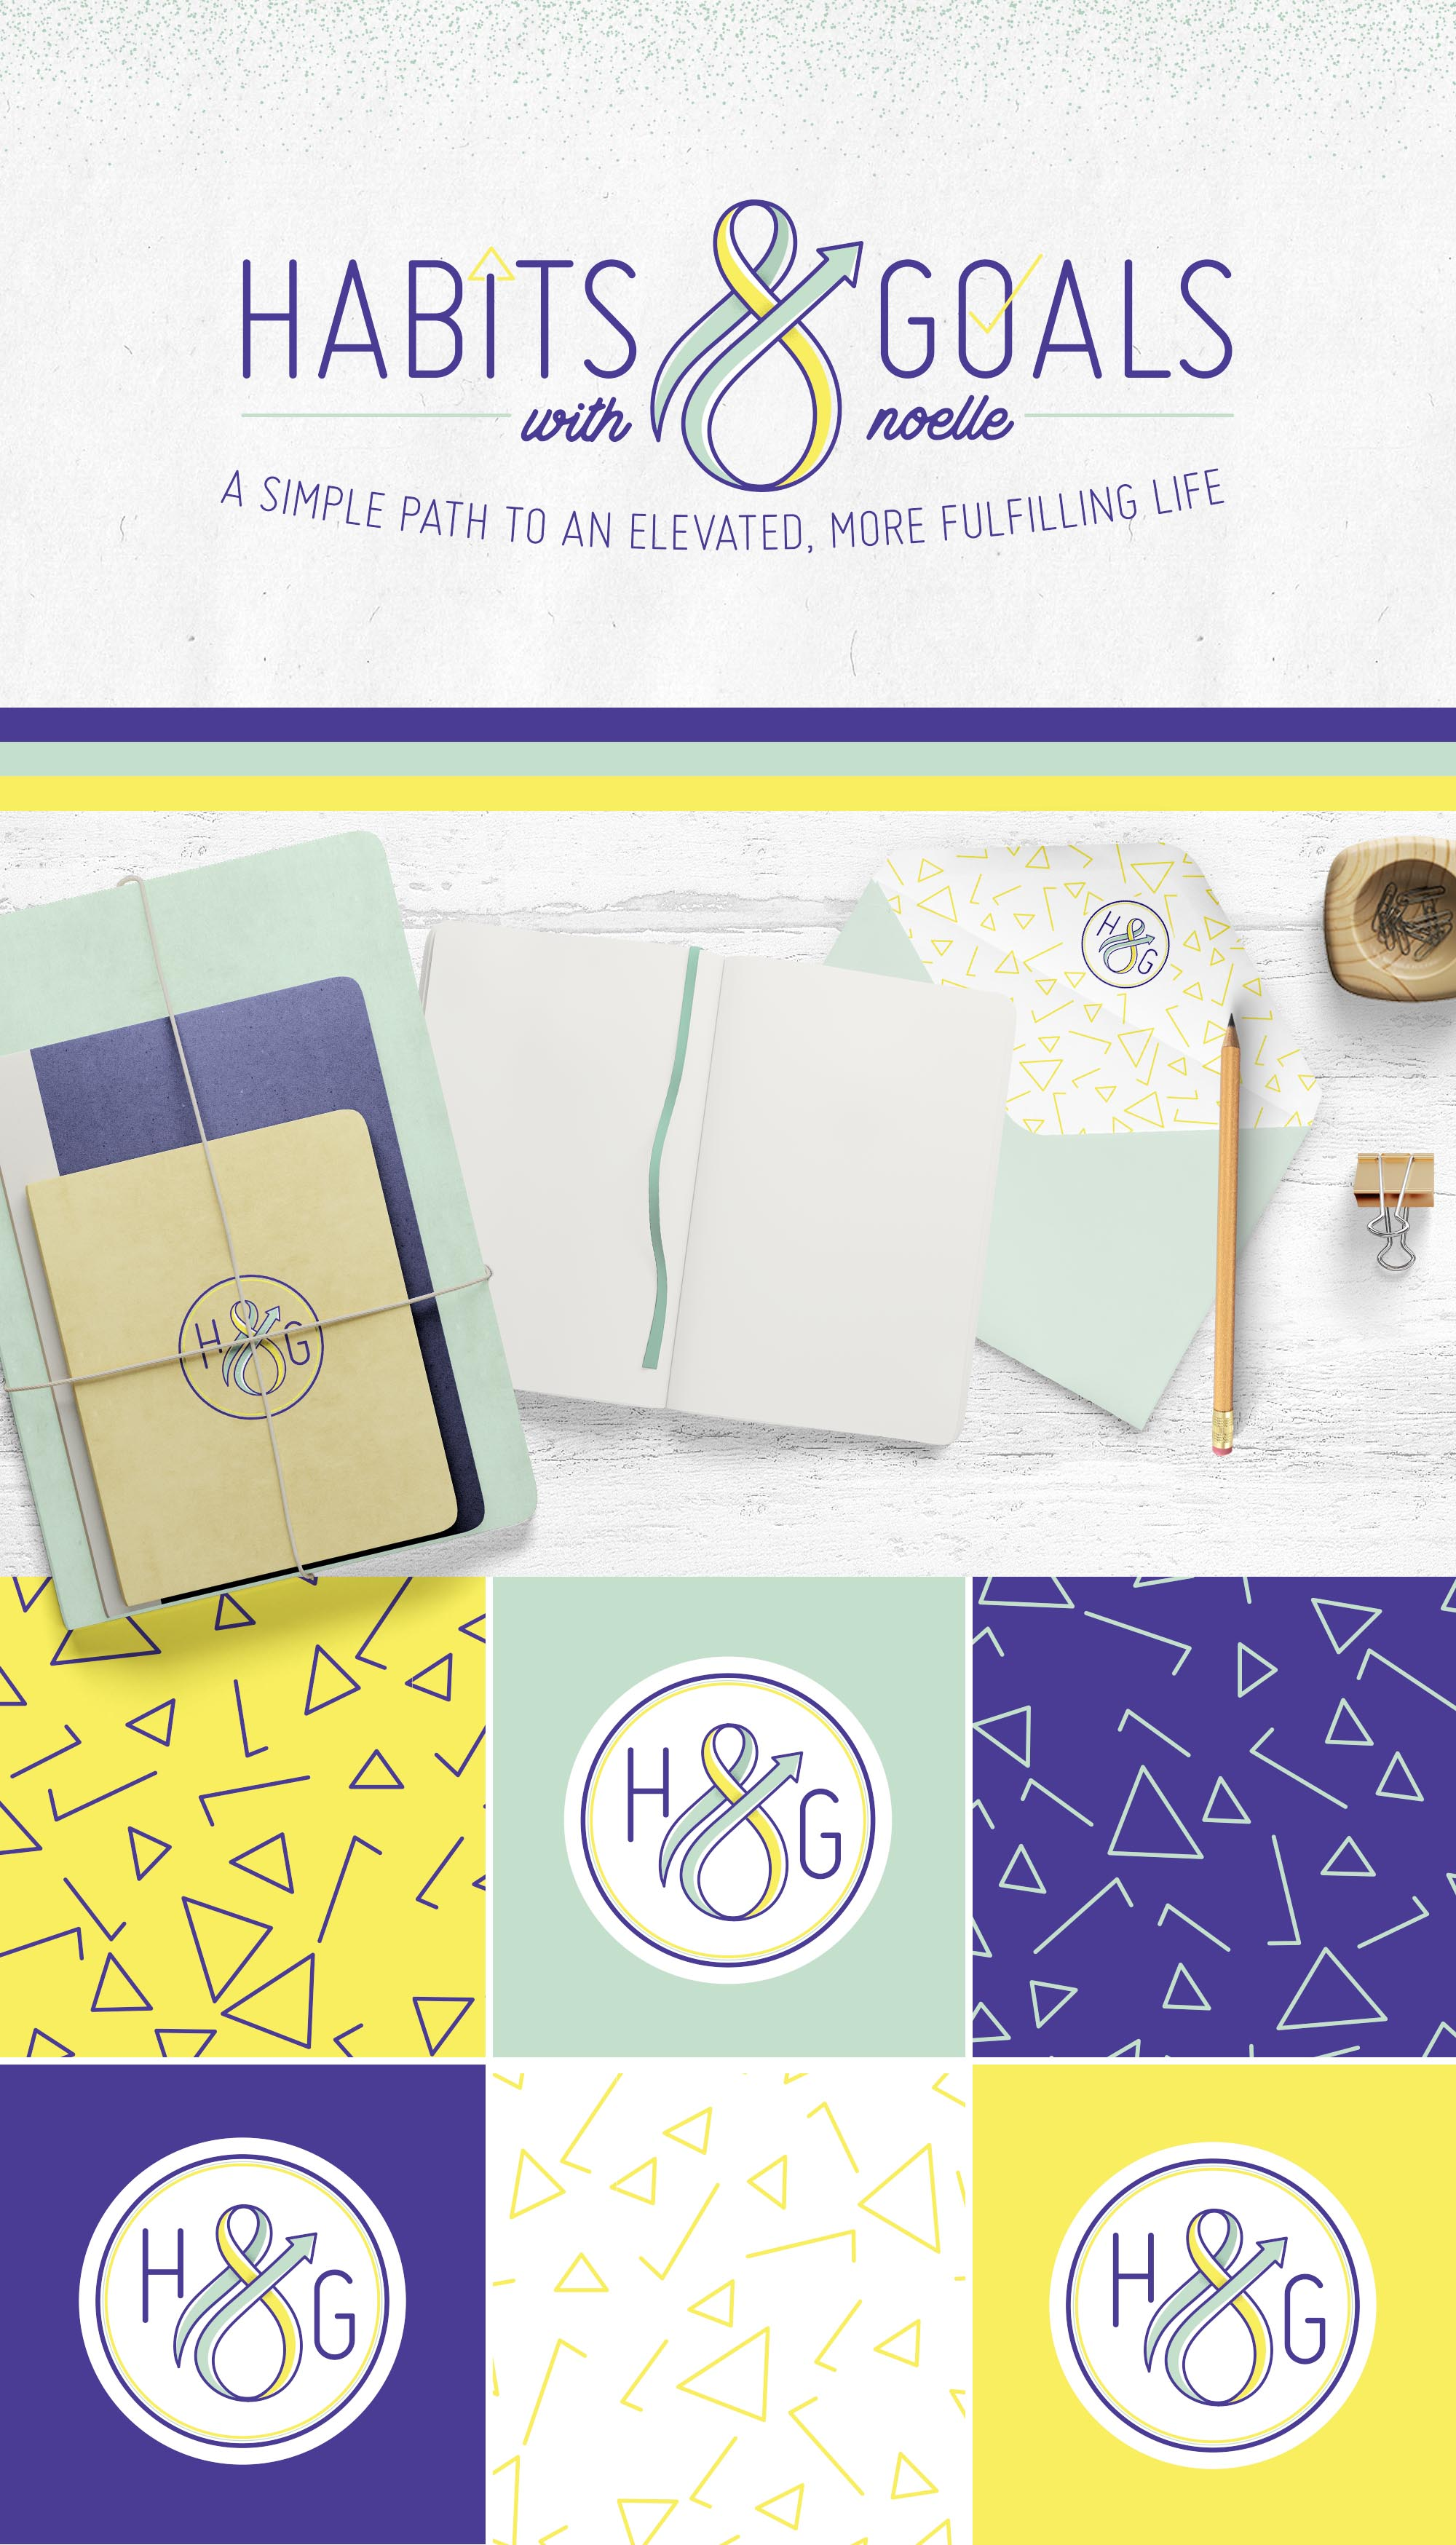 Habits and Goals with Noelle is a branding project, I did for one of my clients that sells worksheets, notebooks, etc. Click through to check out the entire brand identity design. EyeSavvy Design | Kiki Bakowski #branding #branding101 #habits #goals